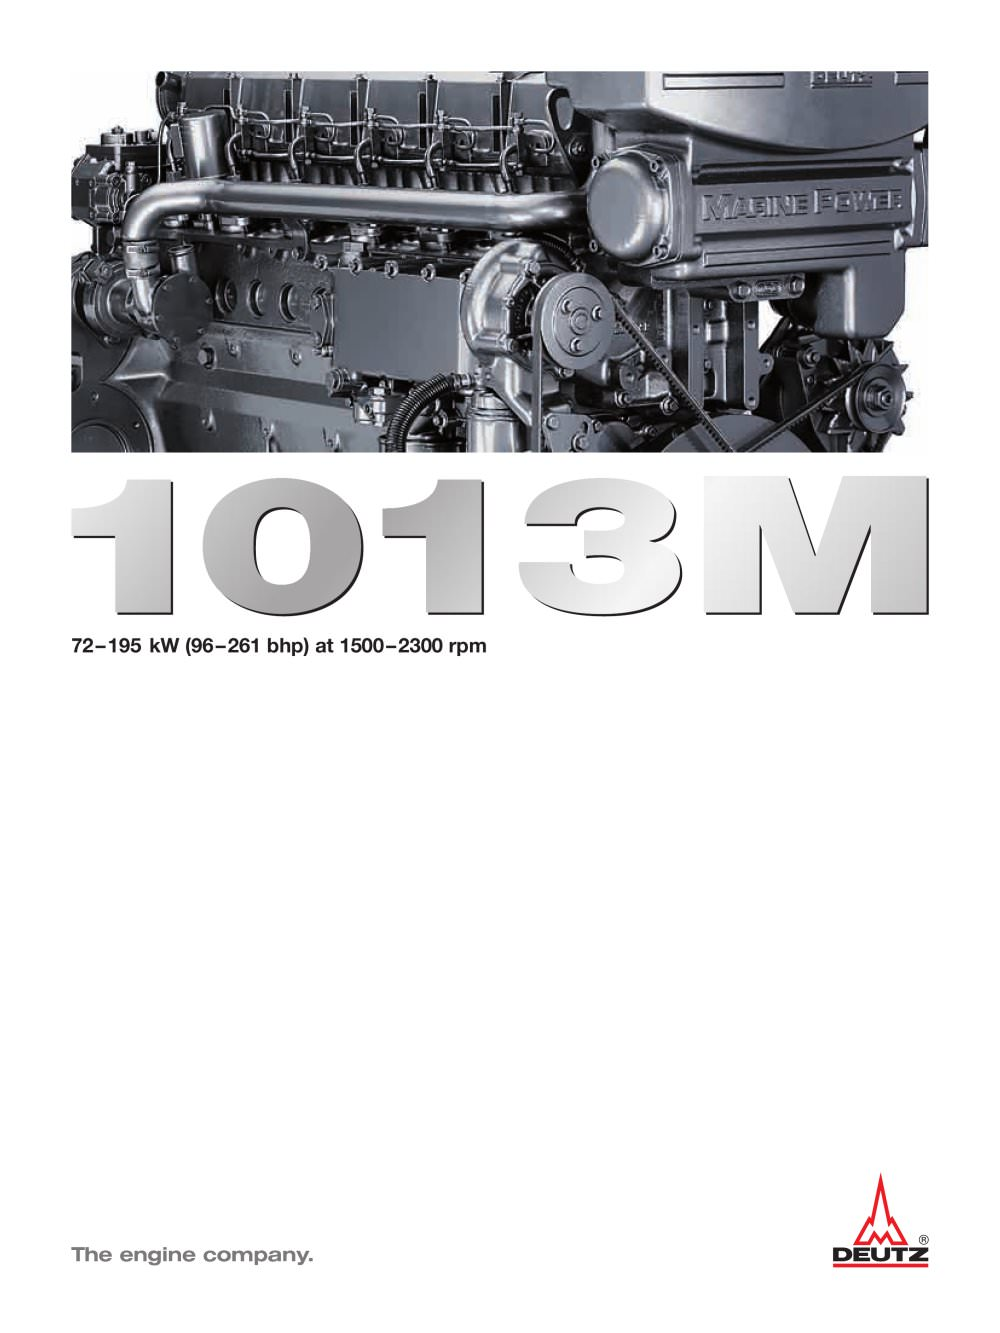 1013M The marine engine - 1 / 8 Pages